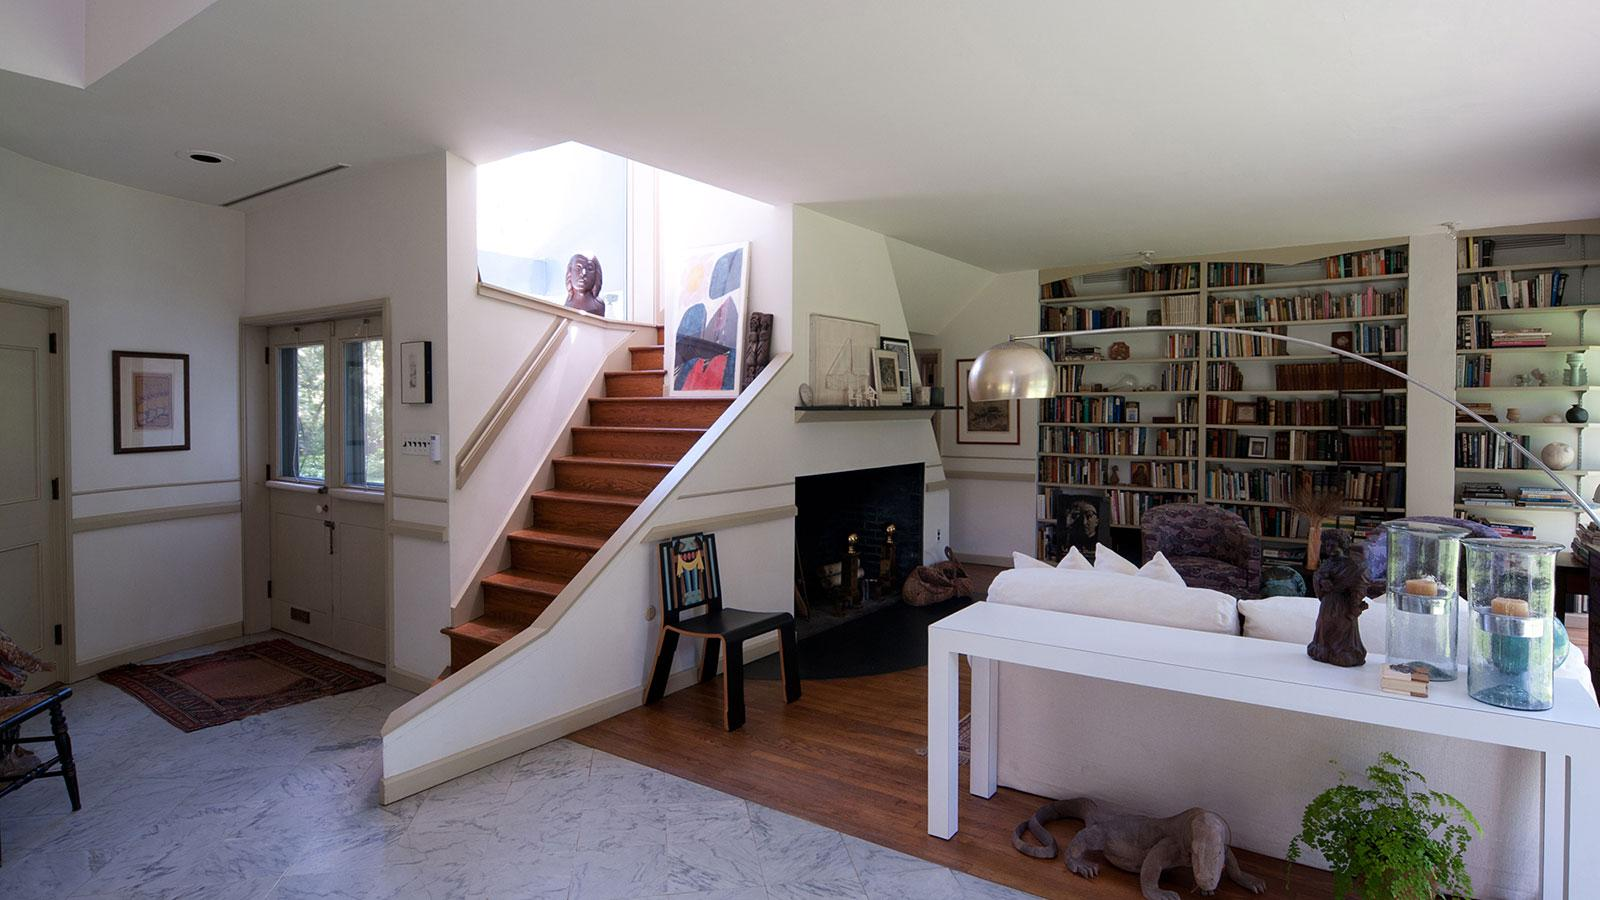 The venturi house modern architecture blog for Home architecture blog